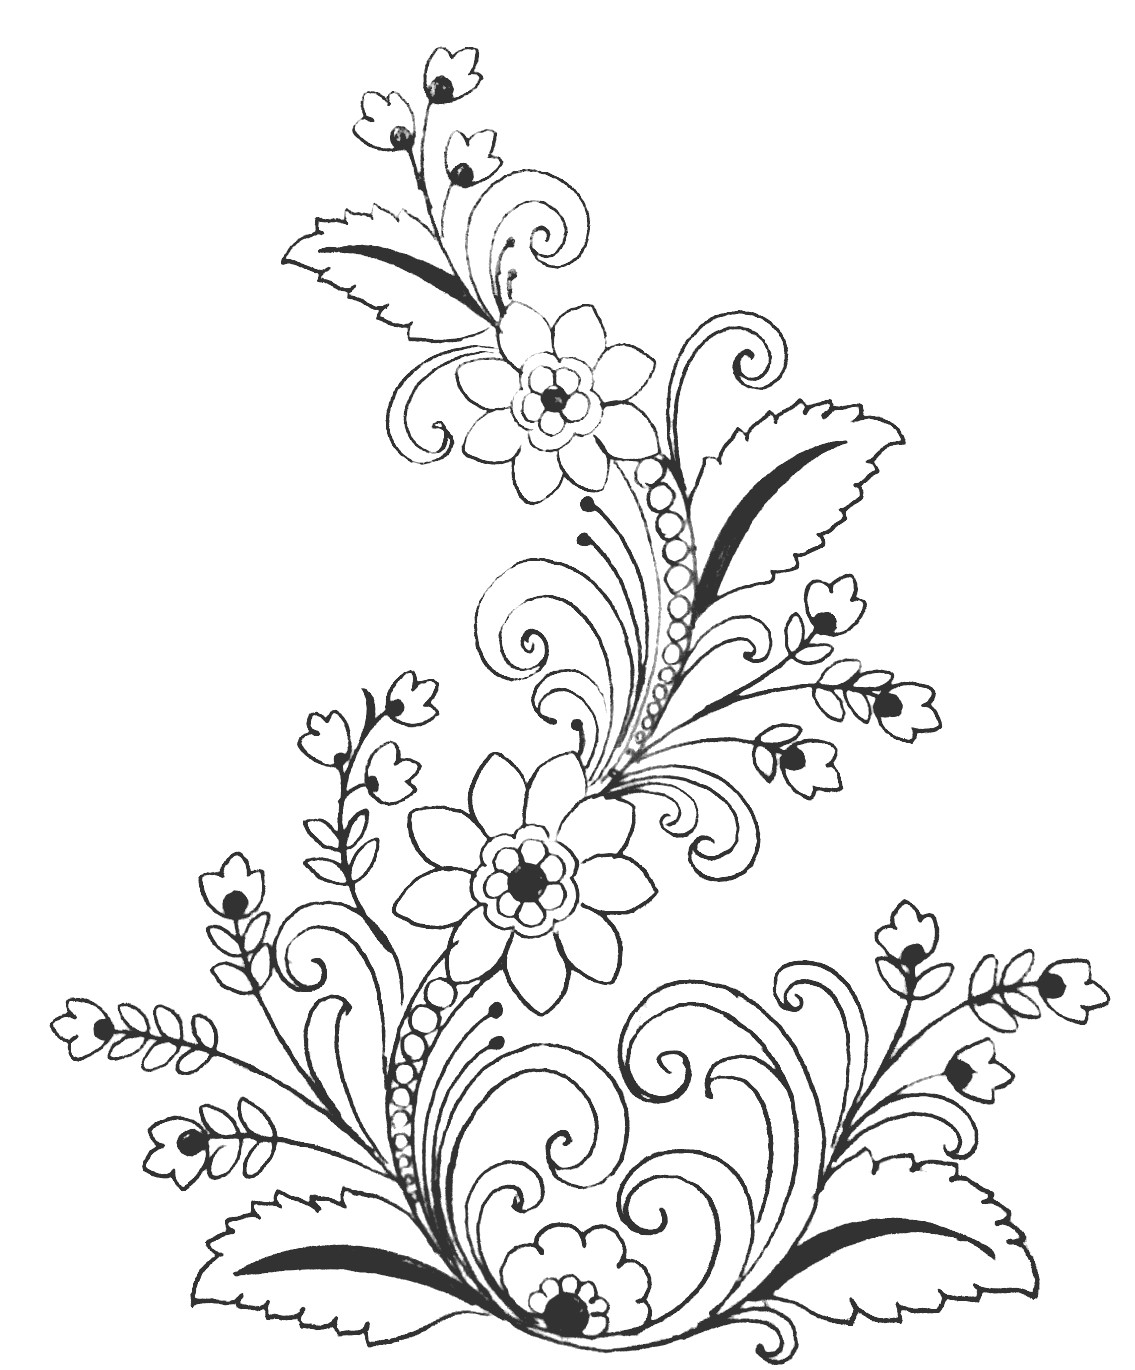 Embroidery sarees designs images free download 2020/ hand embroidery flowers designs drawing easy to pencil